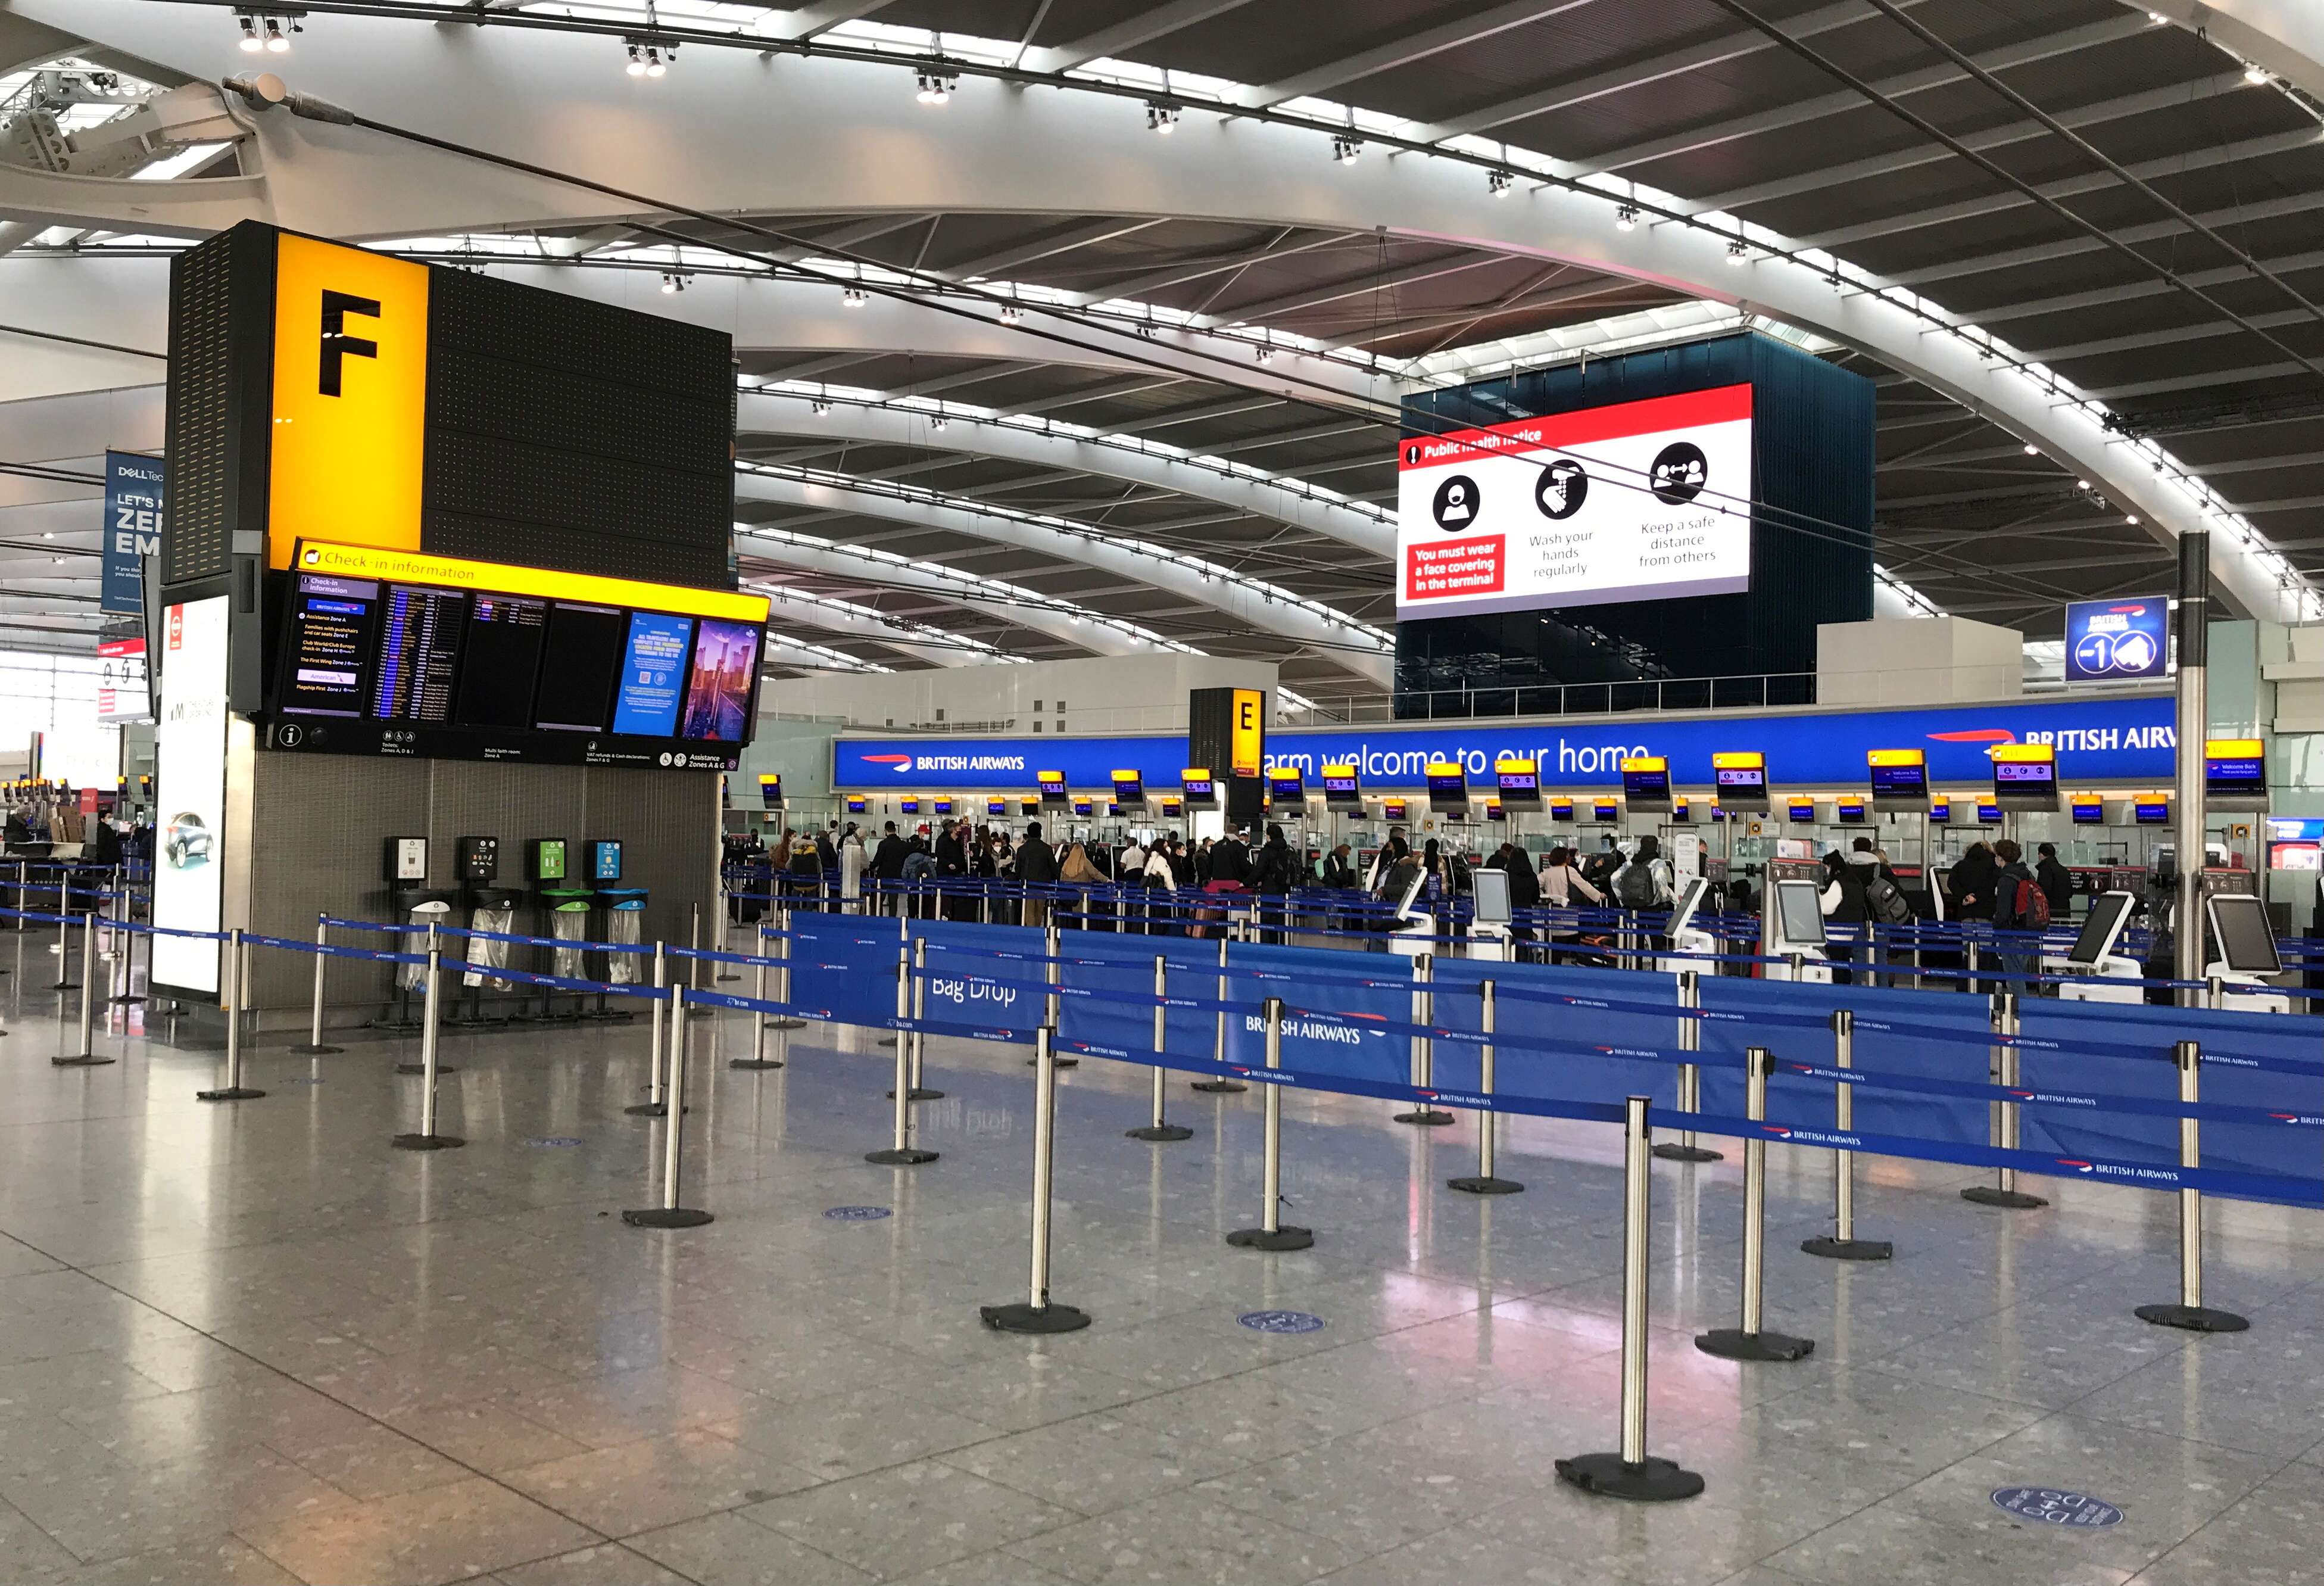 FIE PHOTO: Passengers are seen at BA check-in desks at Heathrow Airport, following the outbreak of the coronavirus disease (COVID-19), London, Britain January 15, 2021. REUTERS/Matthew Childs